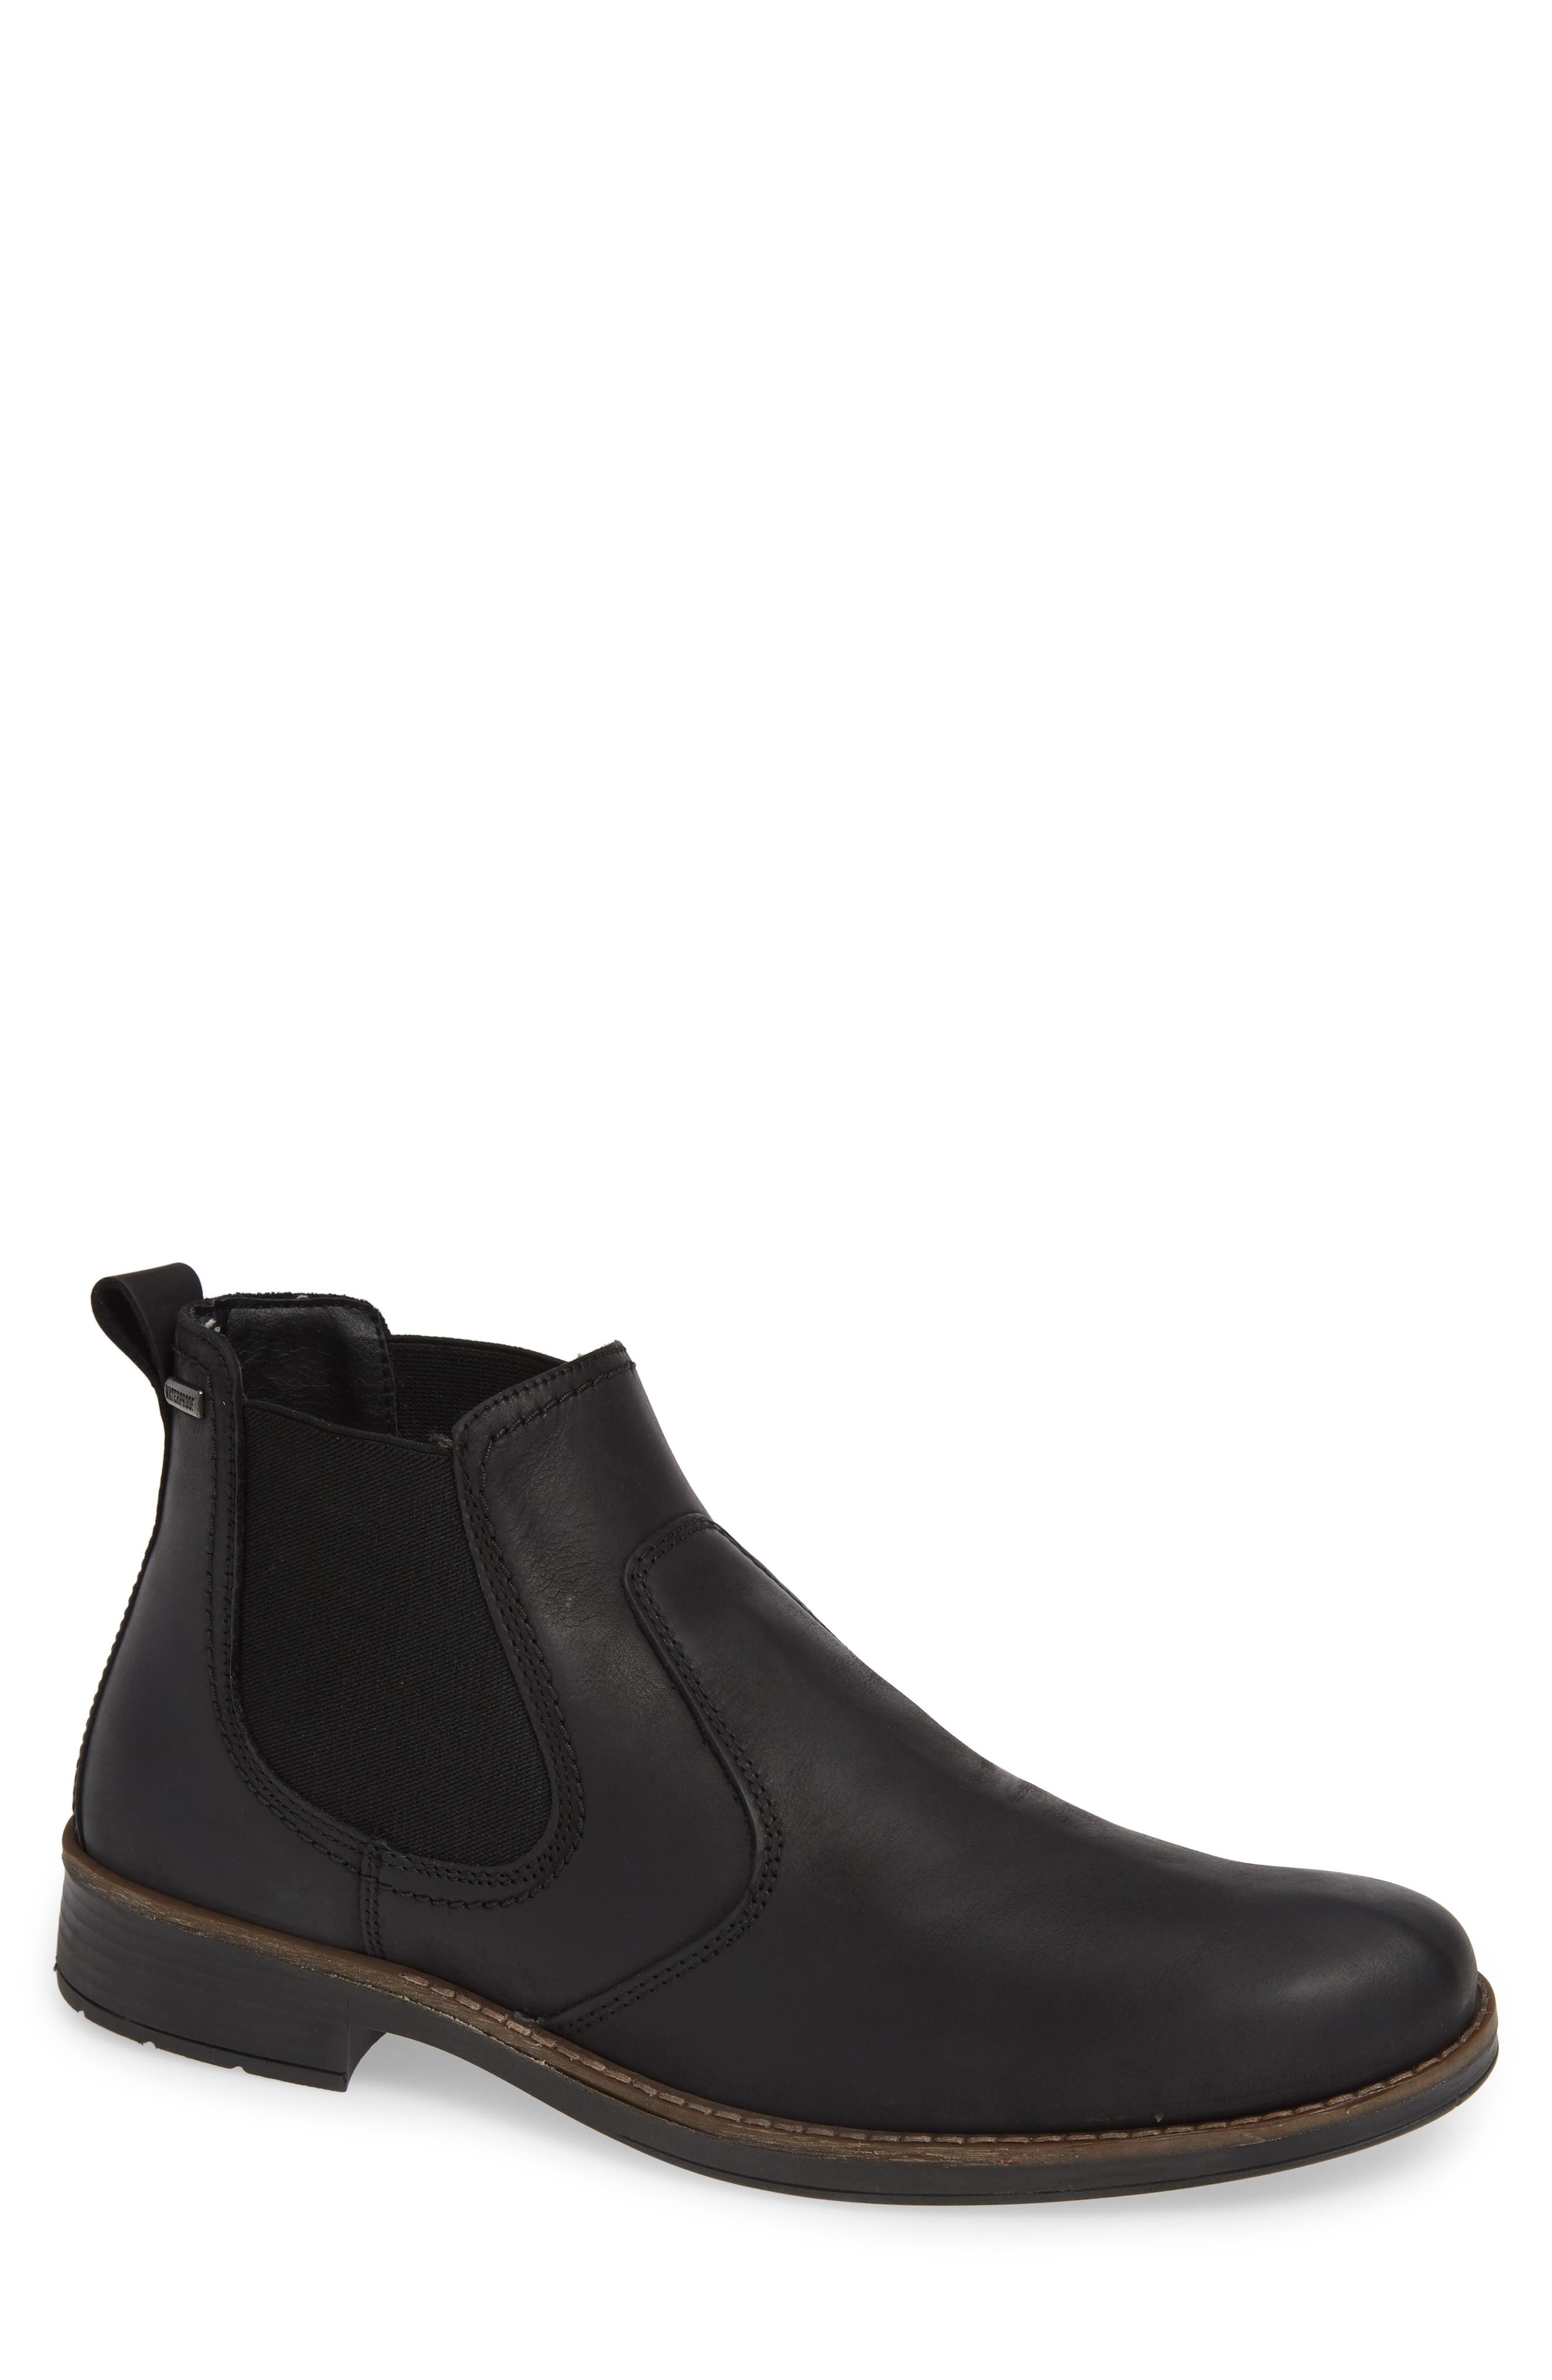 Maple Waterproof Chelsea Boot,                             Main thumbnail 1, color,                             BLACK LEATHER